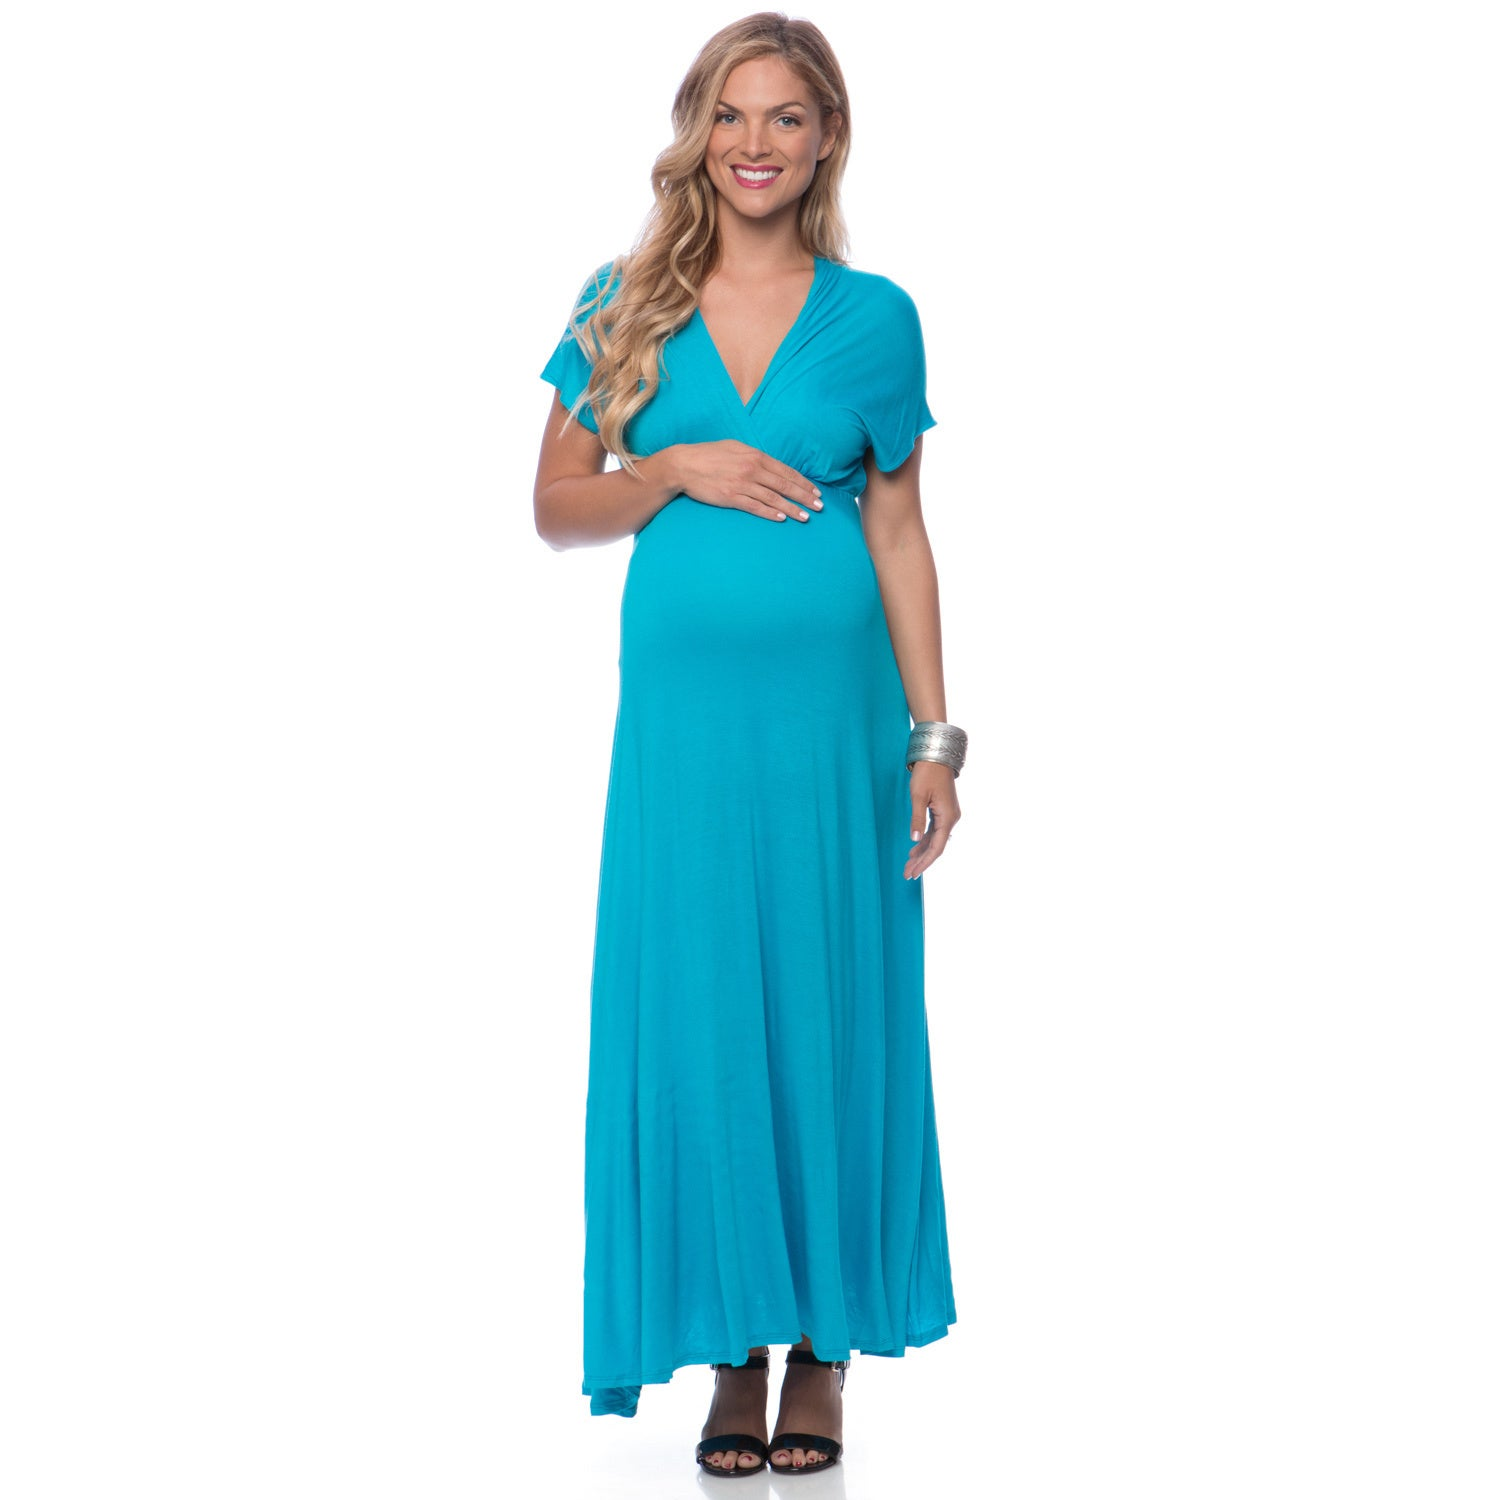 24/7 Comfort Apparel Women's Maternity Faux Wrap Maxi Dre...